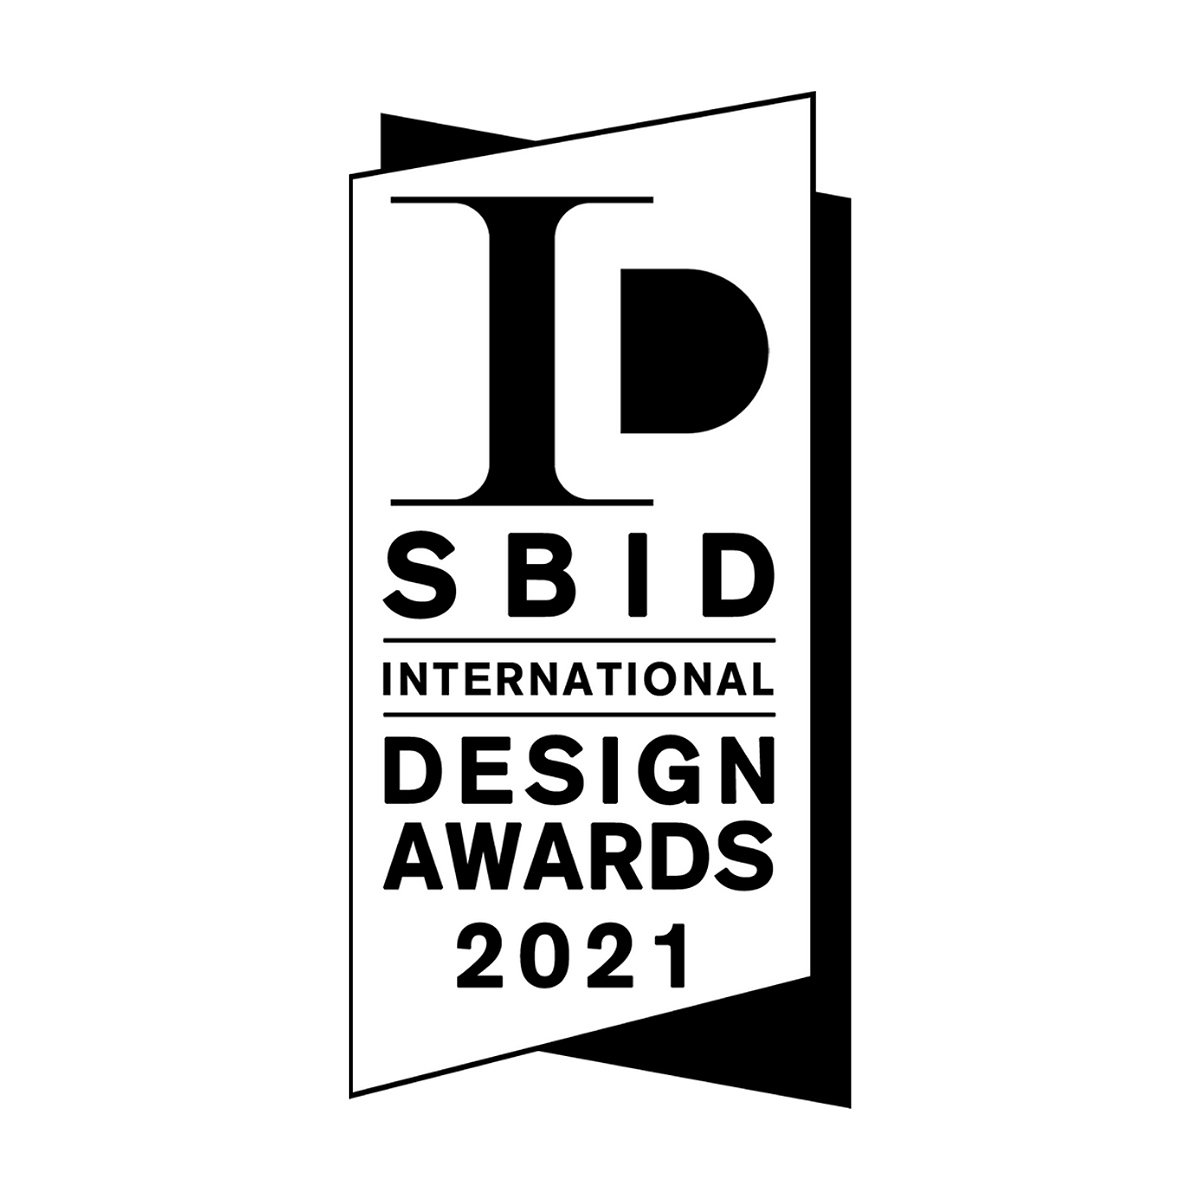 SBID International Design Awards 2021